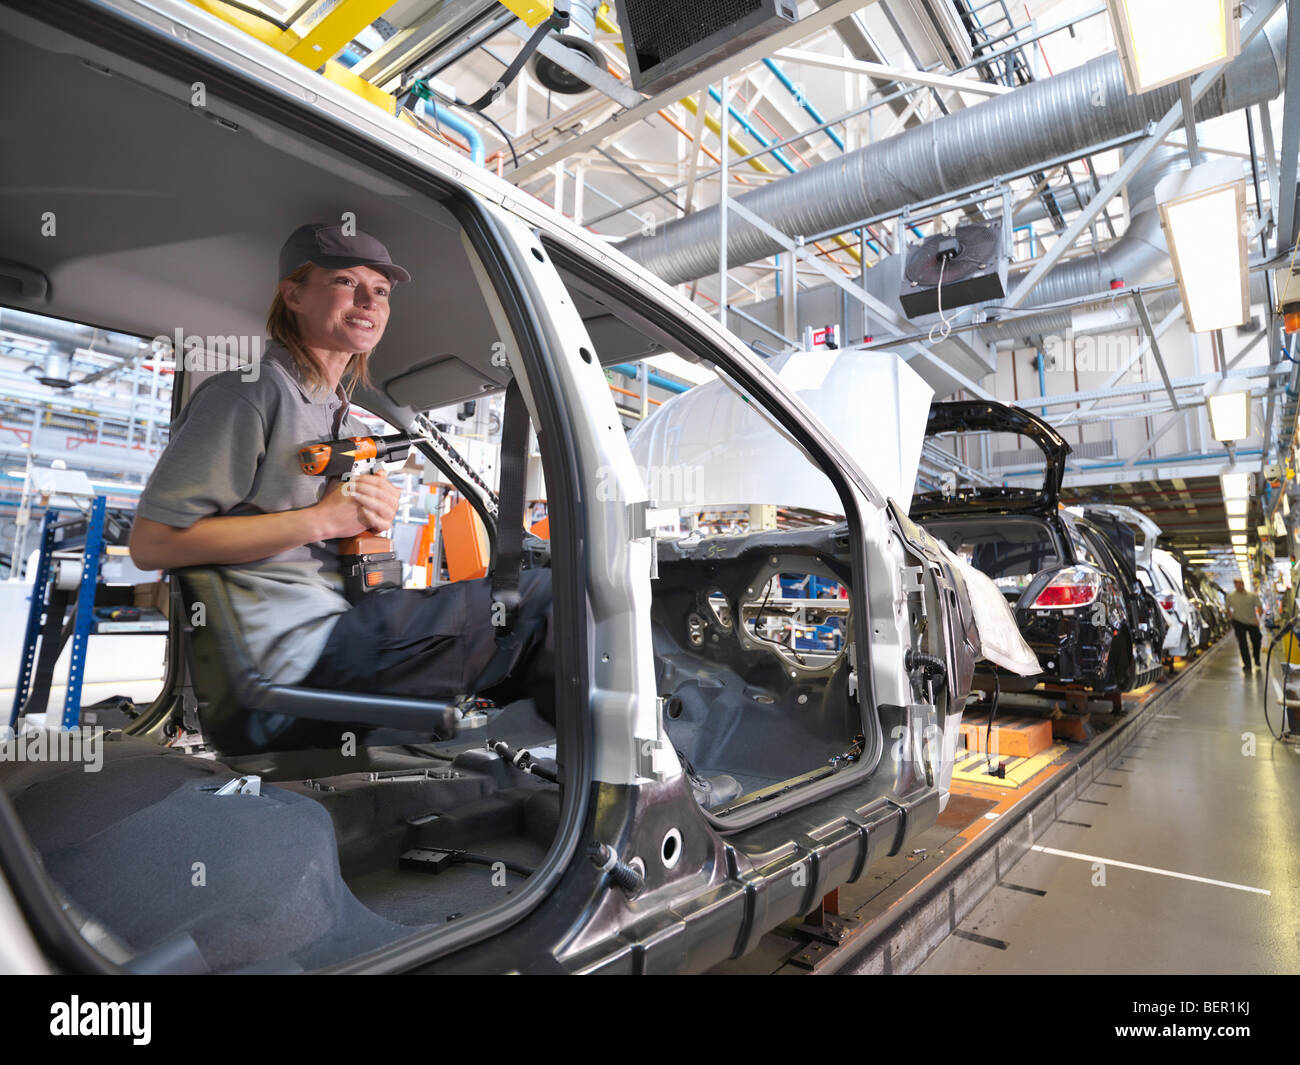 Female Car Worker On Production Line - Stock Image